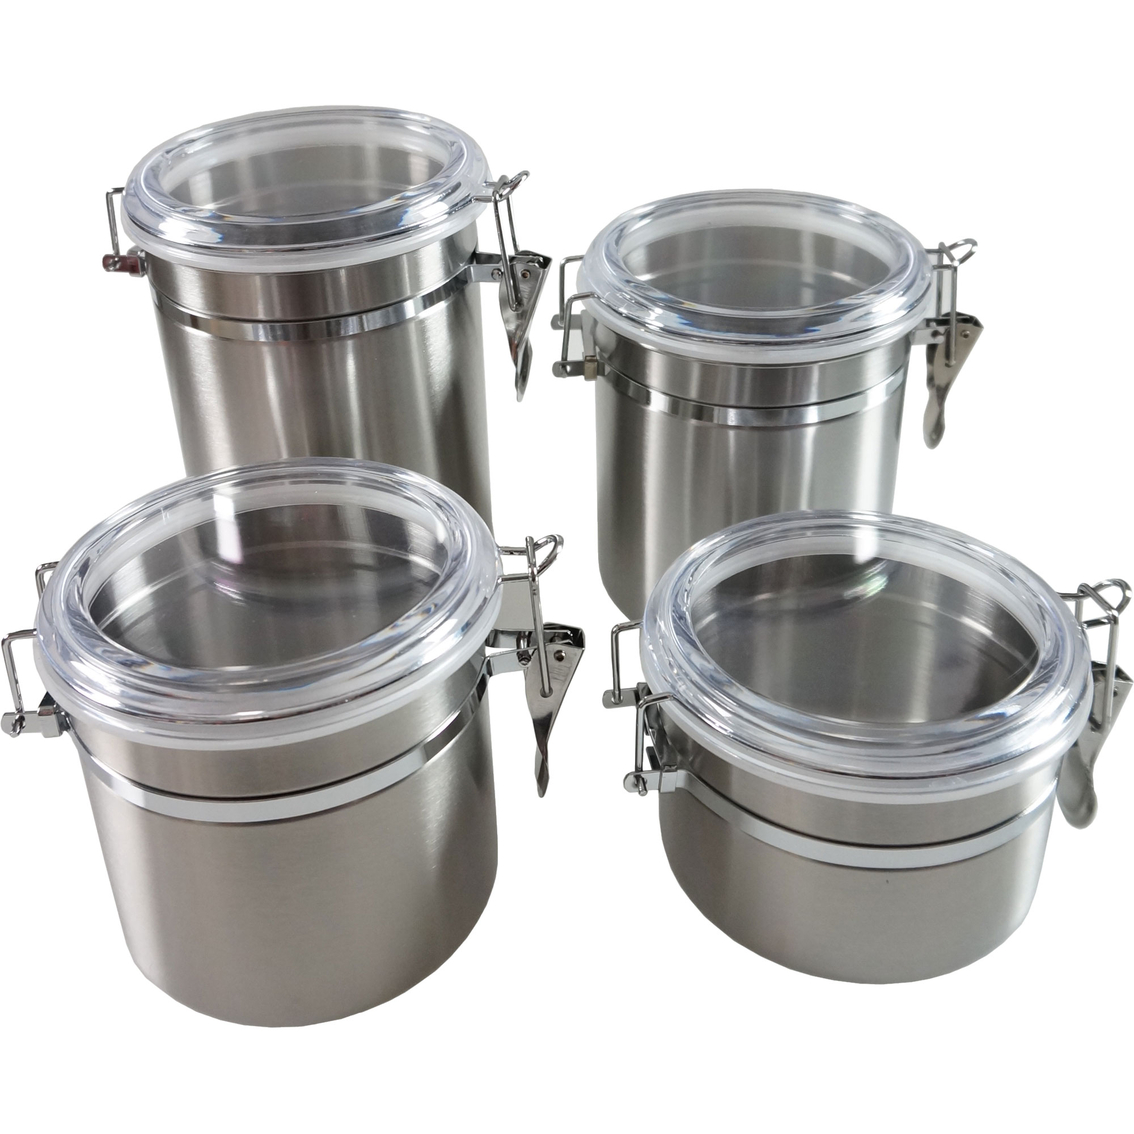 simply perfect 4 pc stainless steel canister set canisters